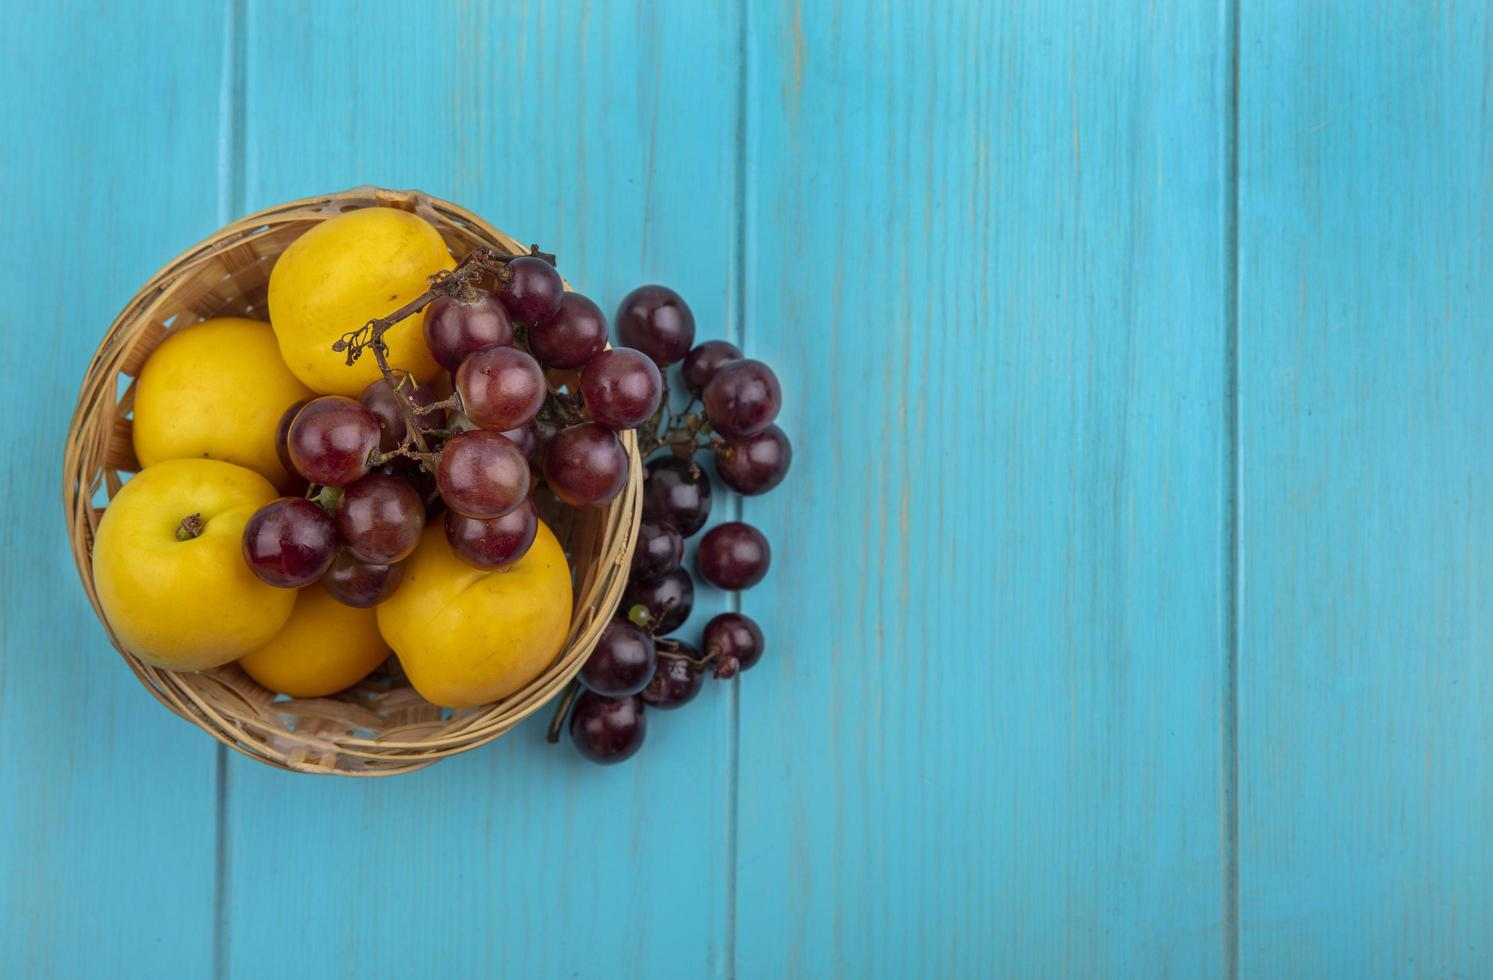 Assorted fruit in a basket on blue background photo